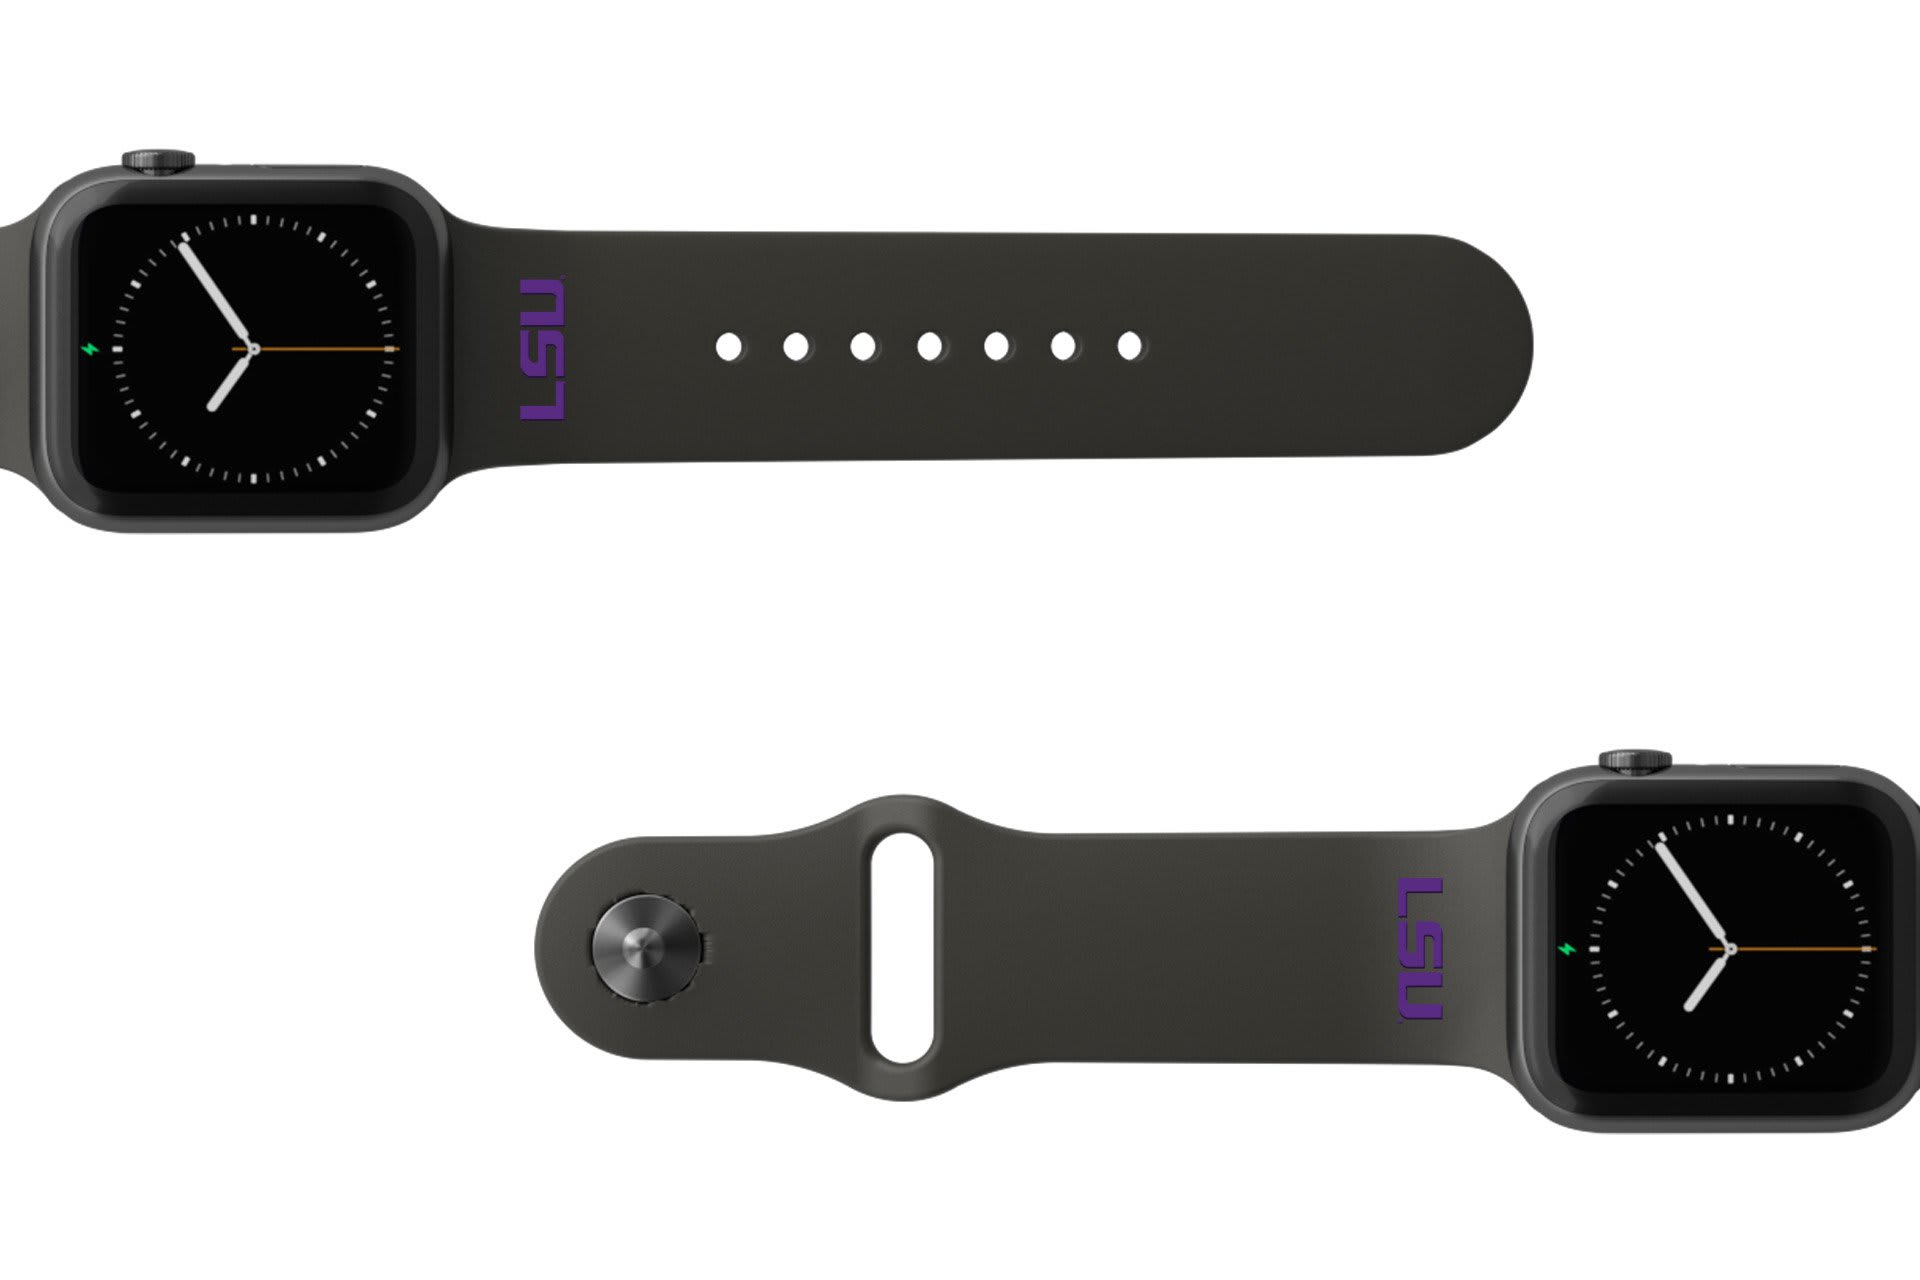 College LSU Black apple watch band with gray hardware viewed from rear